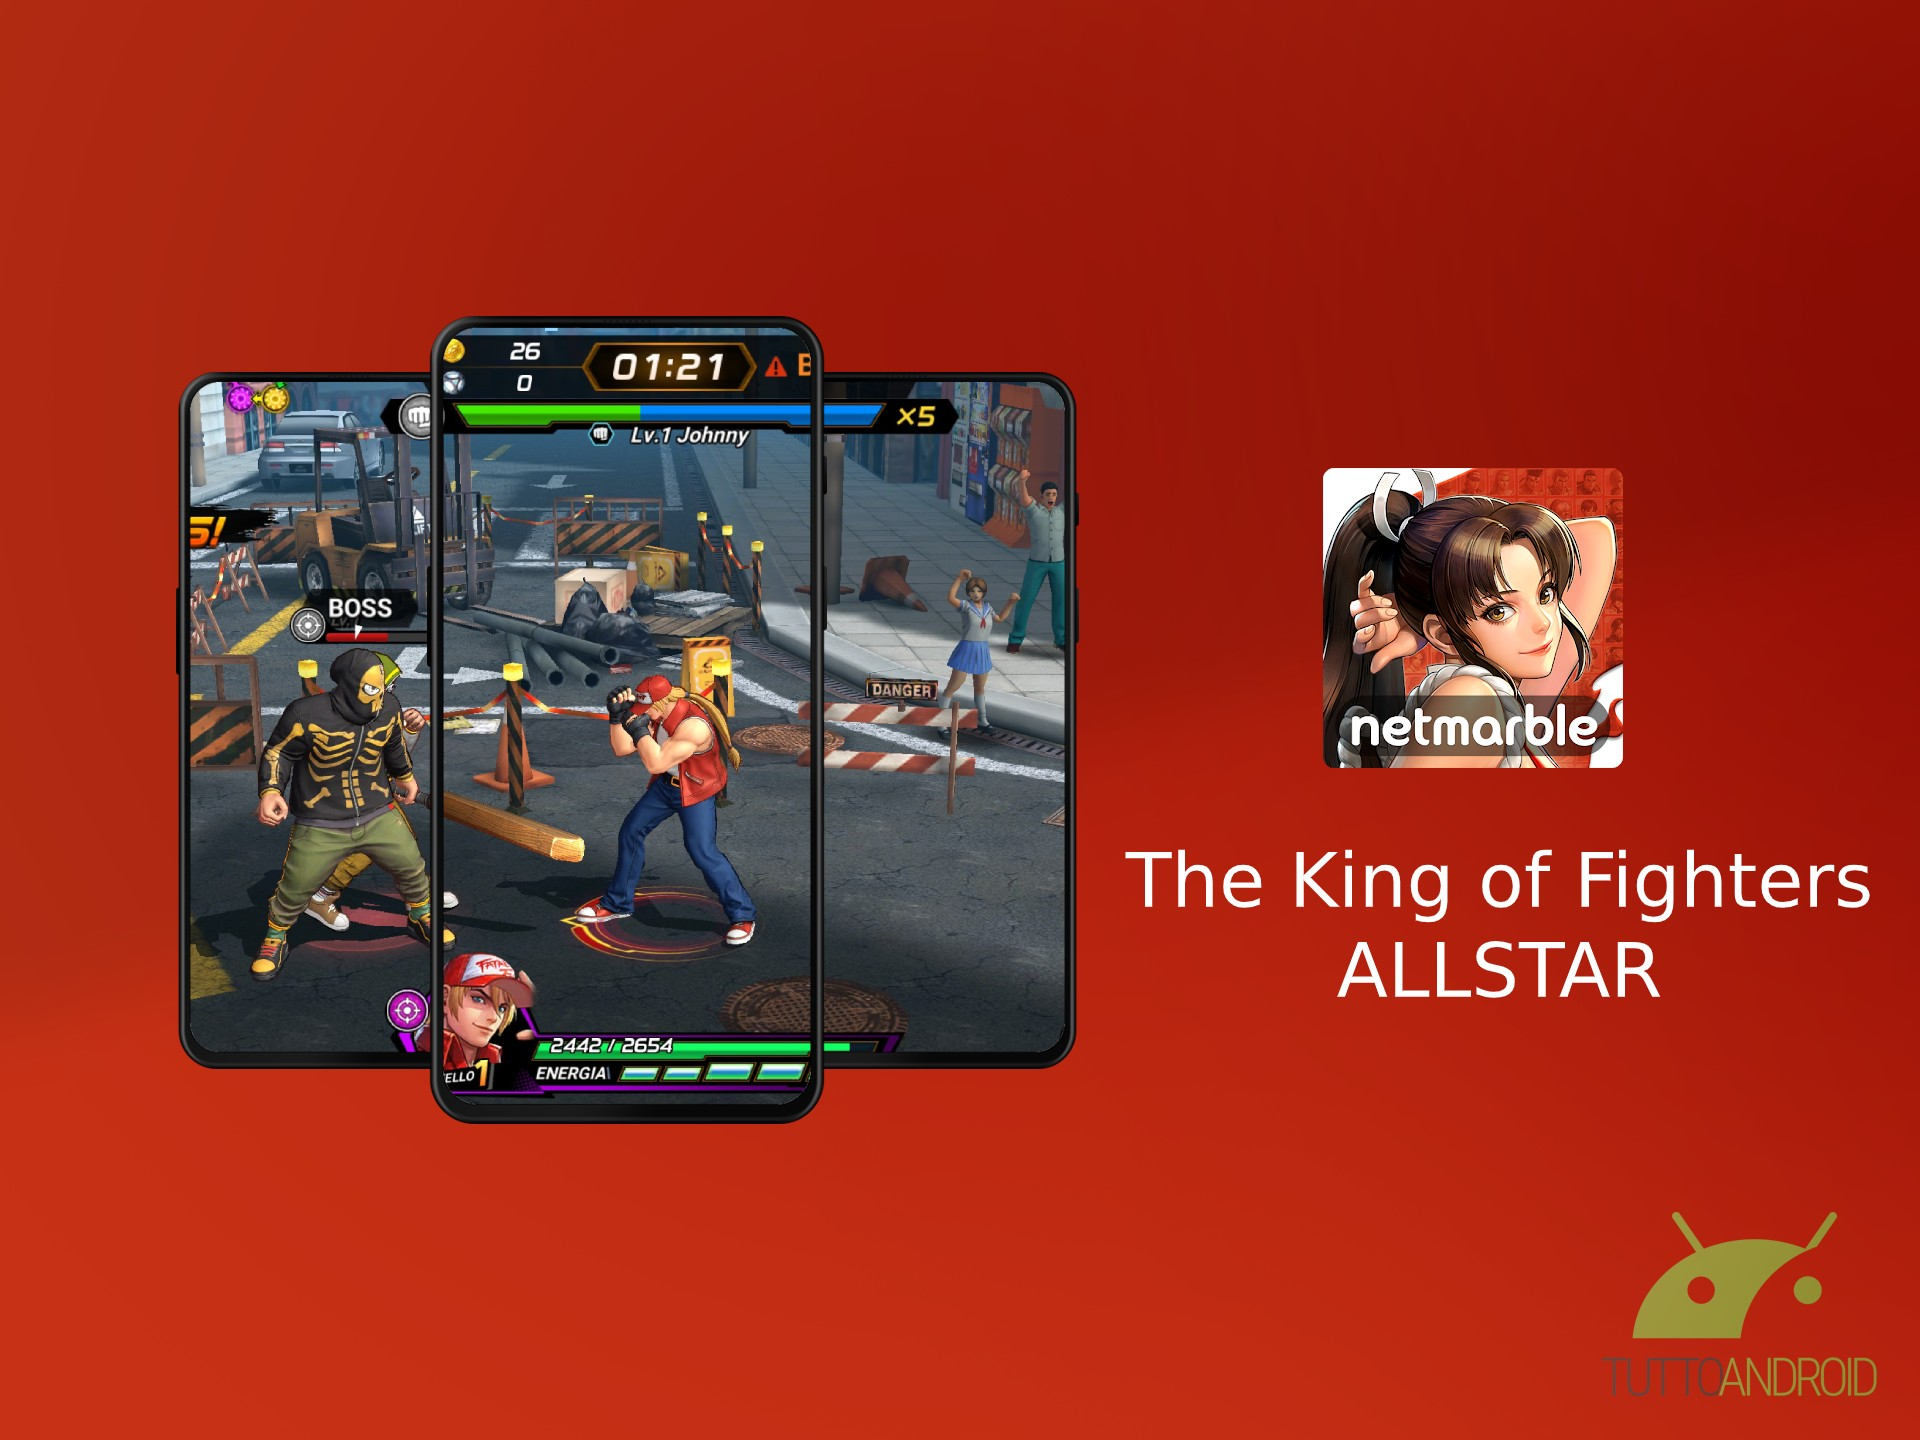 The King of Fighters ALLSTAR riunisce tutti i combattenti de